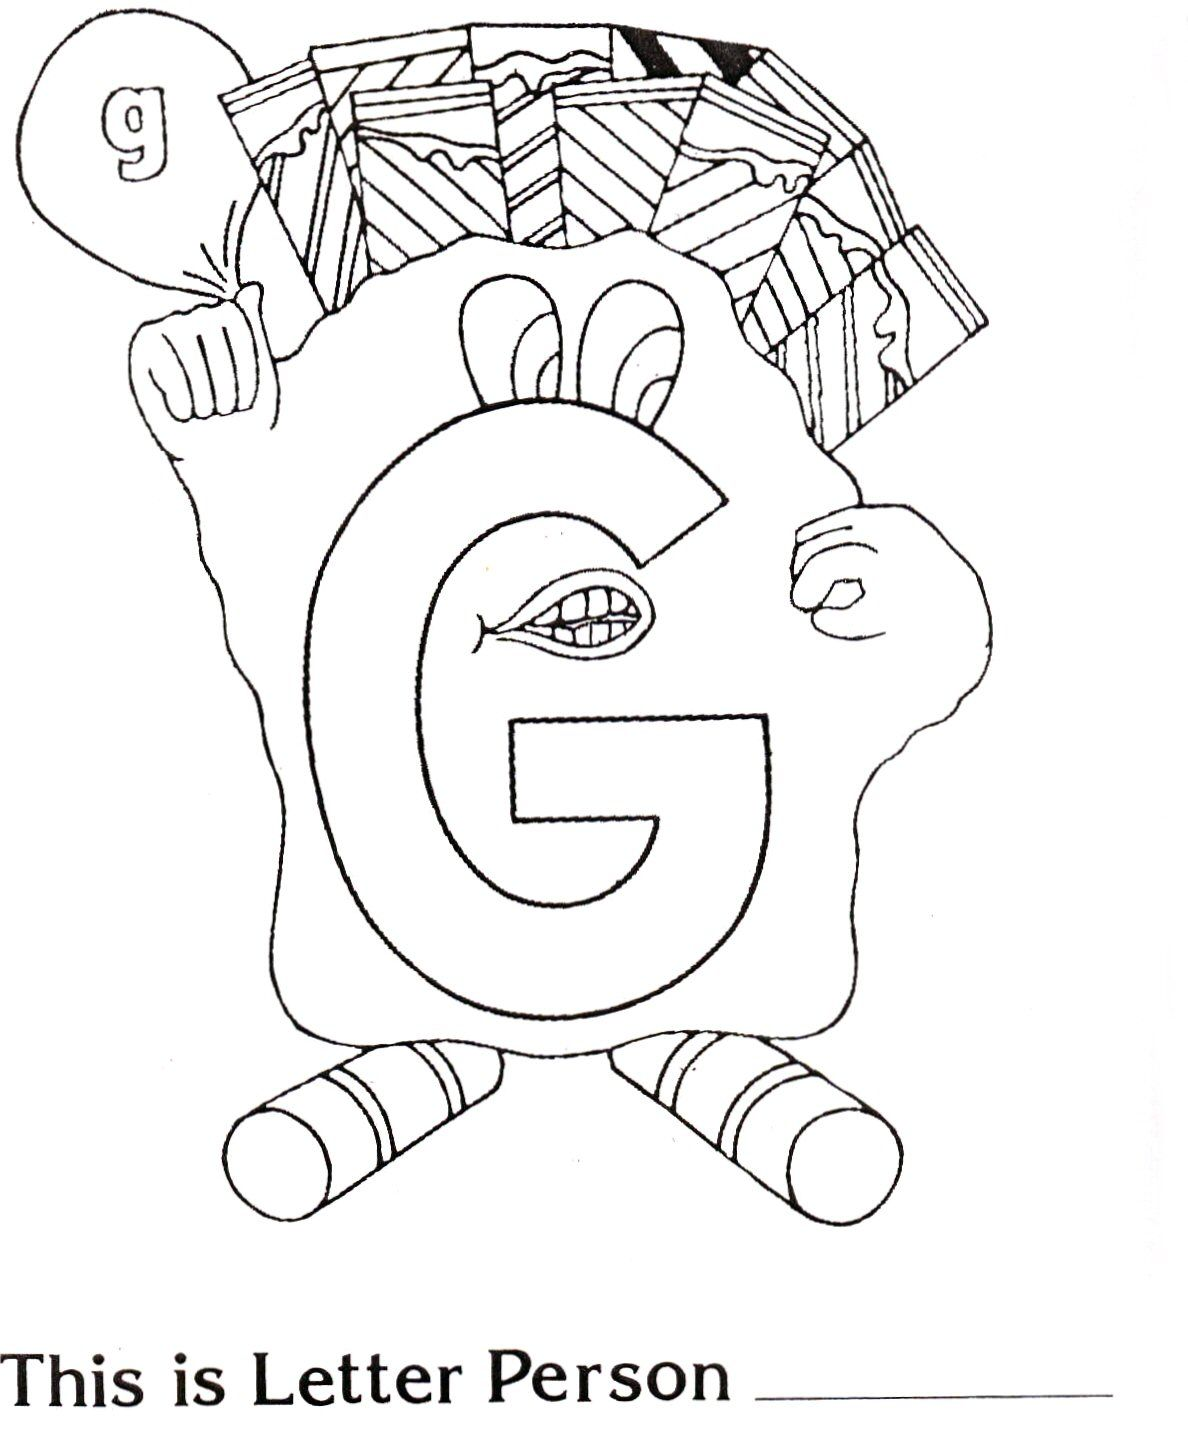 Brilliant Beginnings Preschool Letter Person G Coloring